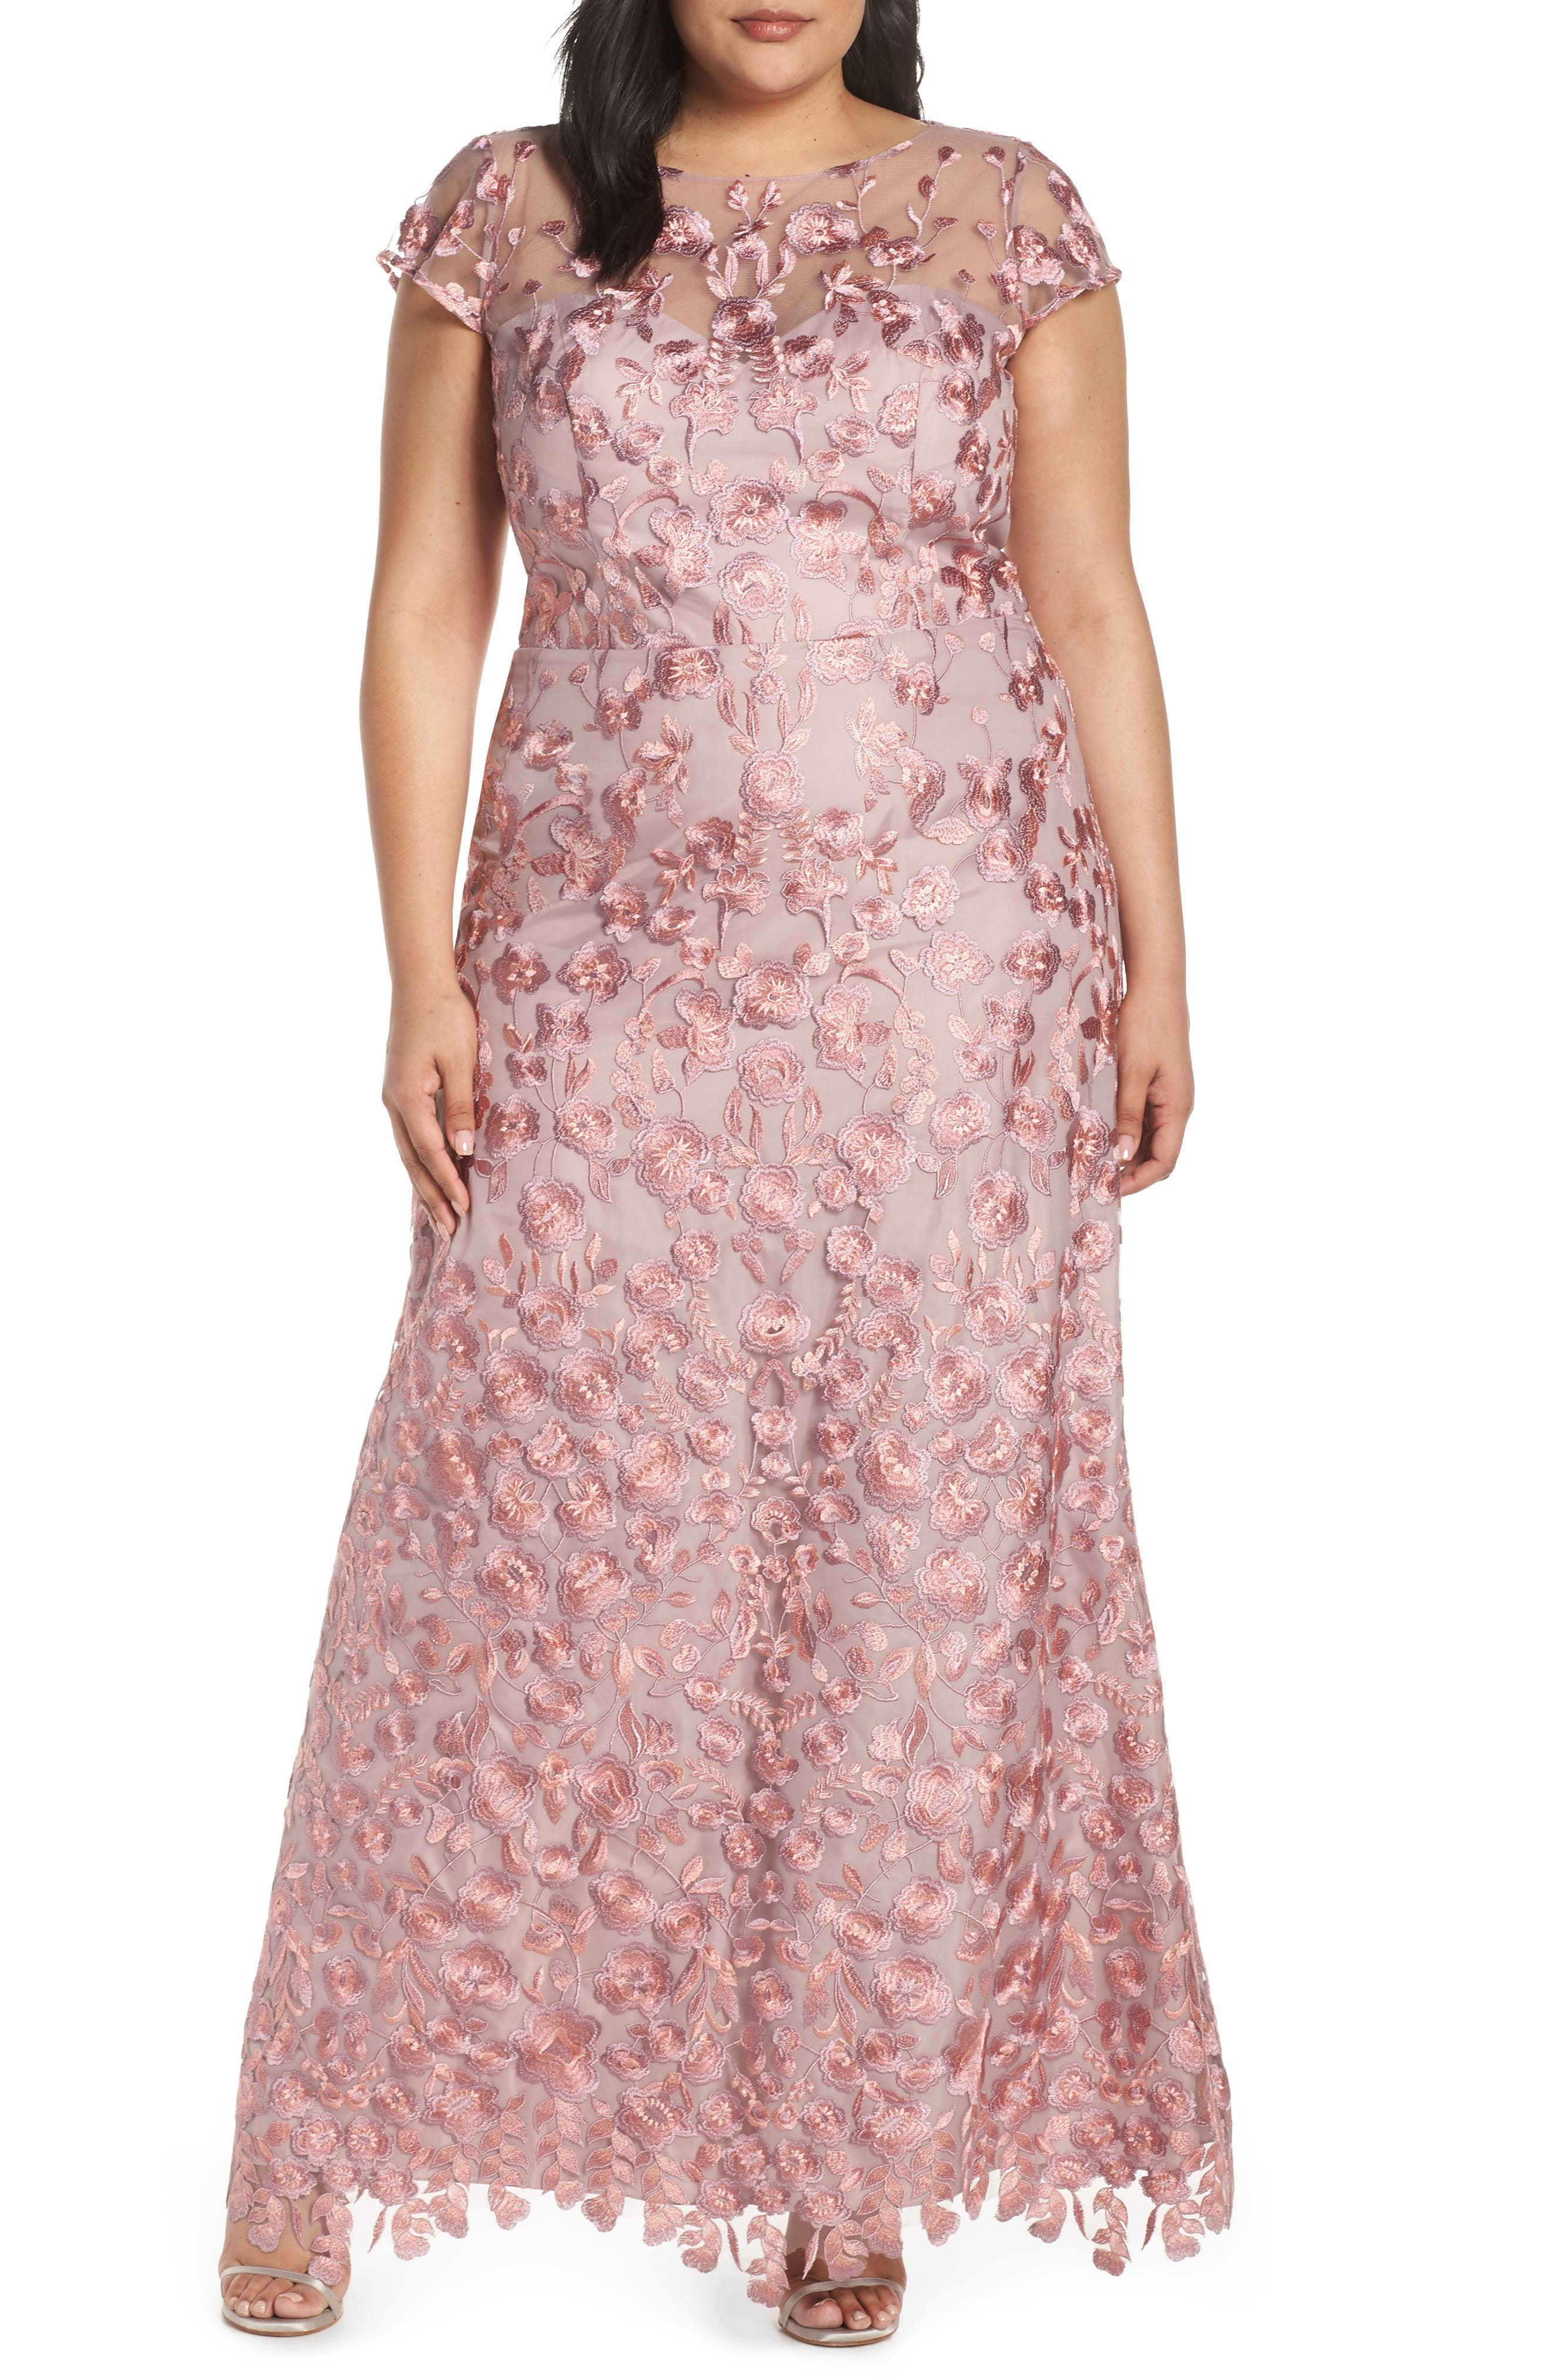 Edwardian Evening Gowns , Ballgowns, Formal Dresses Plus Size Womens Js Collections Floral Embroidered Evening Dress $348.00 AT vintagedancer.com